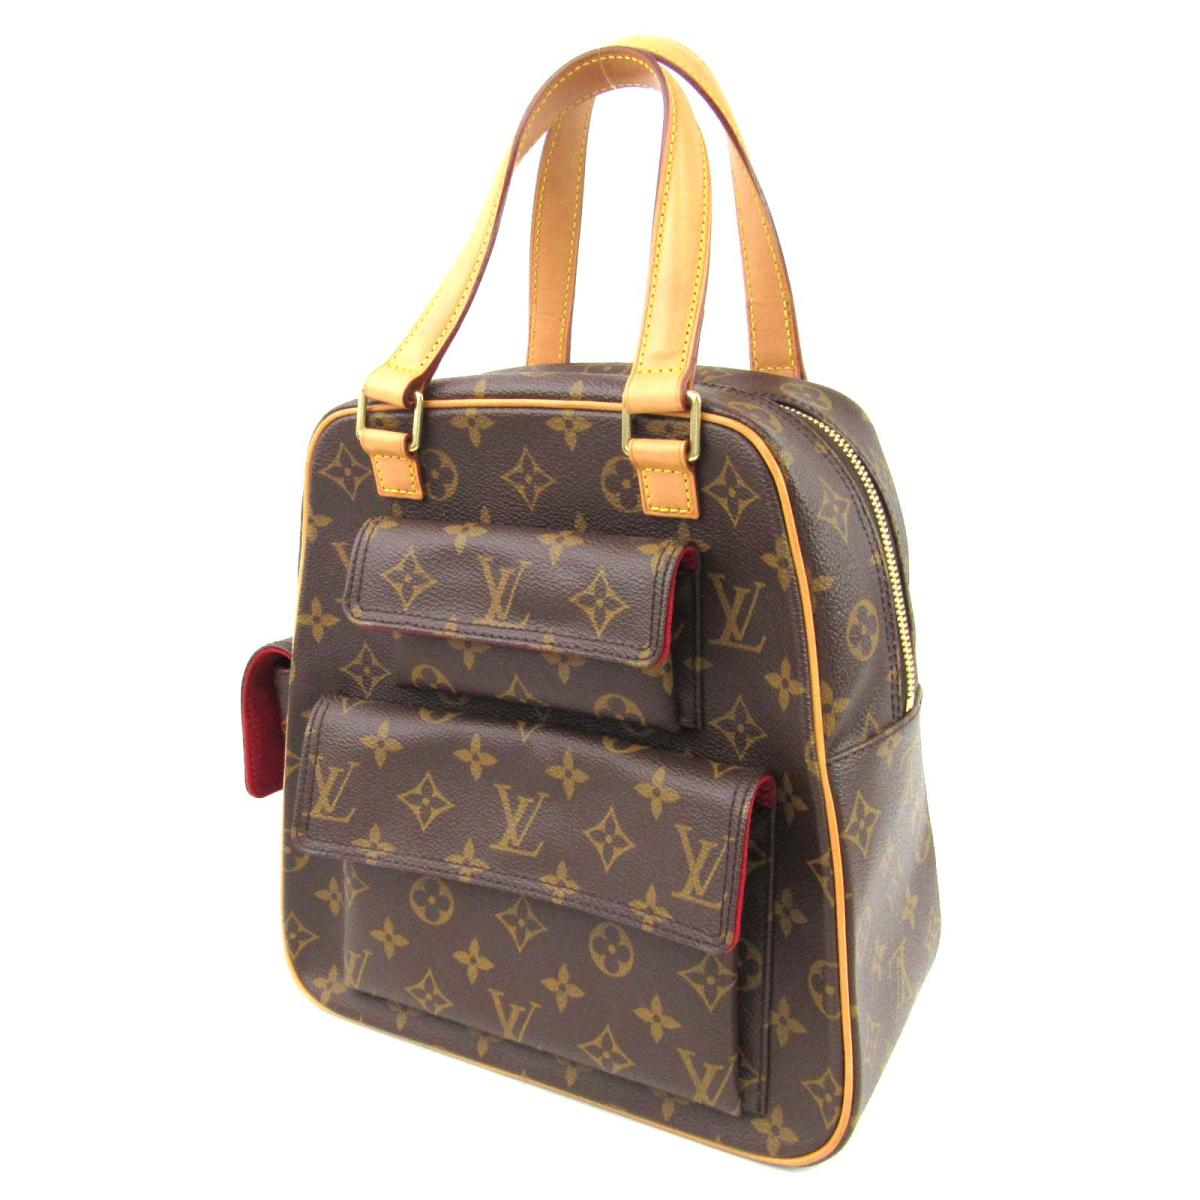 LOUIS VUITTON バッグ M51161 エクサントリ・シテ